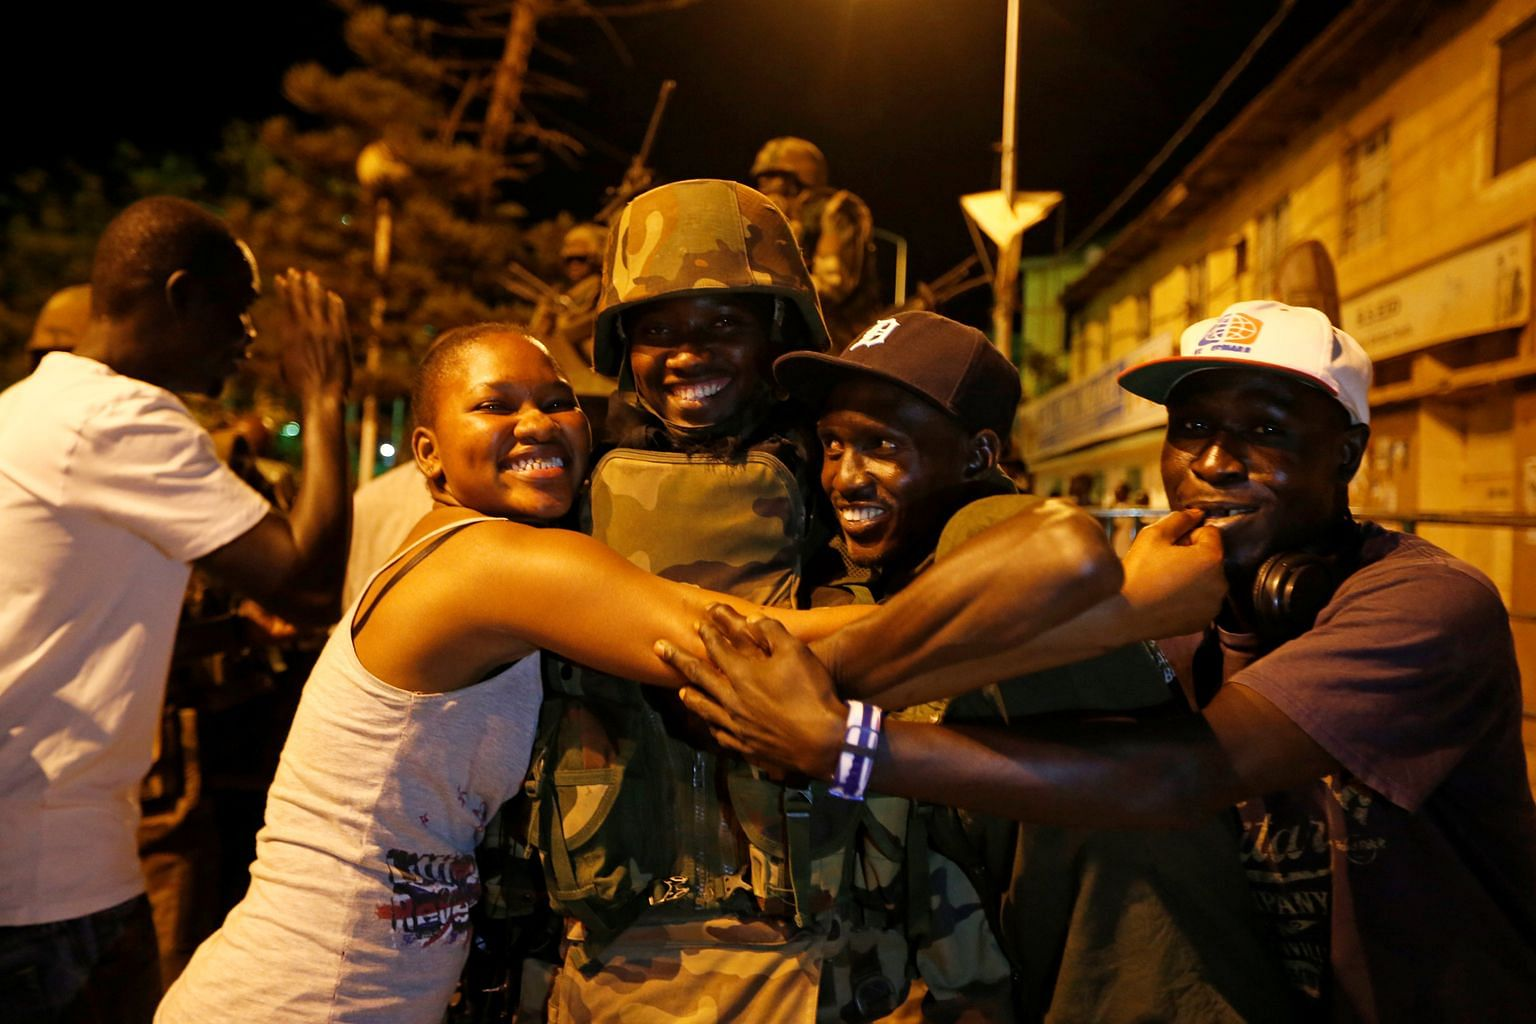 Former president Mr Jammeh, who ruled for 22 years, finally ceded power and left Gambia on Saturday. Residents of the Gambian capital of Banjul celebrating the arrival of West African forces on Sunday. The Economic Community of West African States de